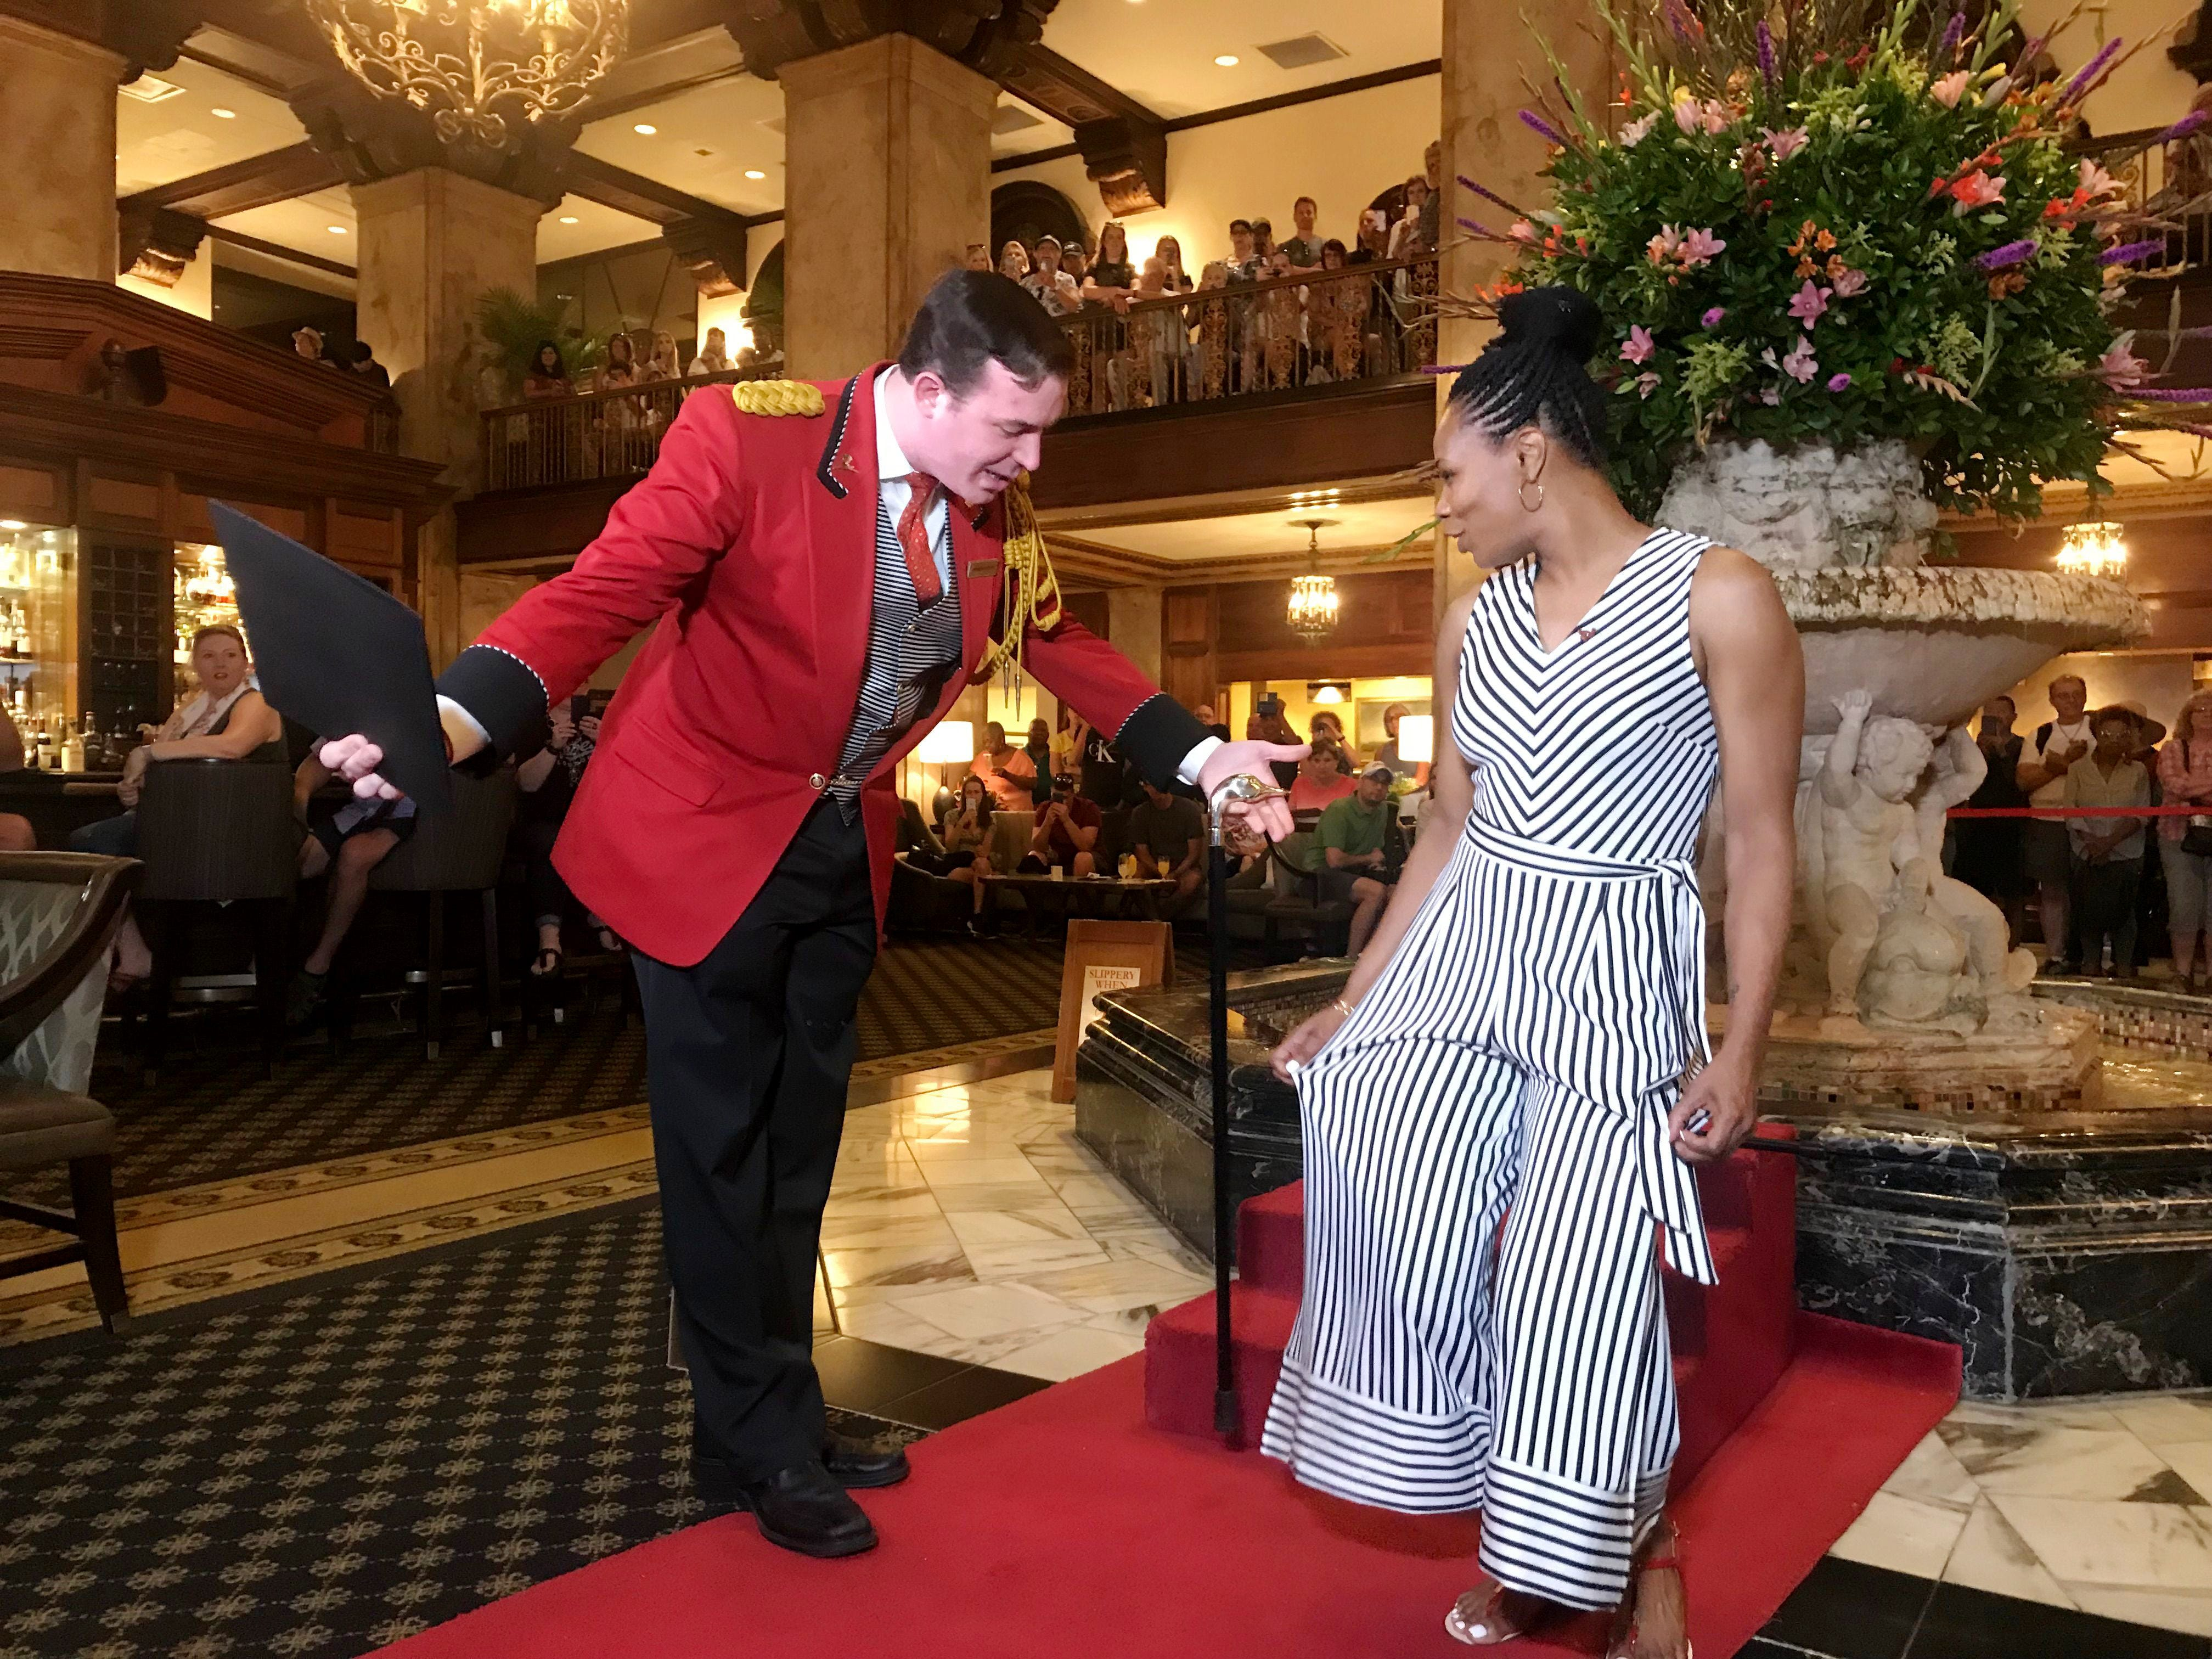 Peabody Hotel Duckmaster Anthony Petrina, left, bestows the duckmaster cane and certificate to Memphis resident Lashara Wheeler on June 6, 2018, in the Grand Lobby of the Peabody Hotel. Wheeler was named honorary duckmaster after hotel staff saw her saving eight ducklings from a storm drain in a viral video.